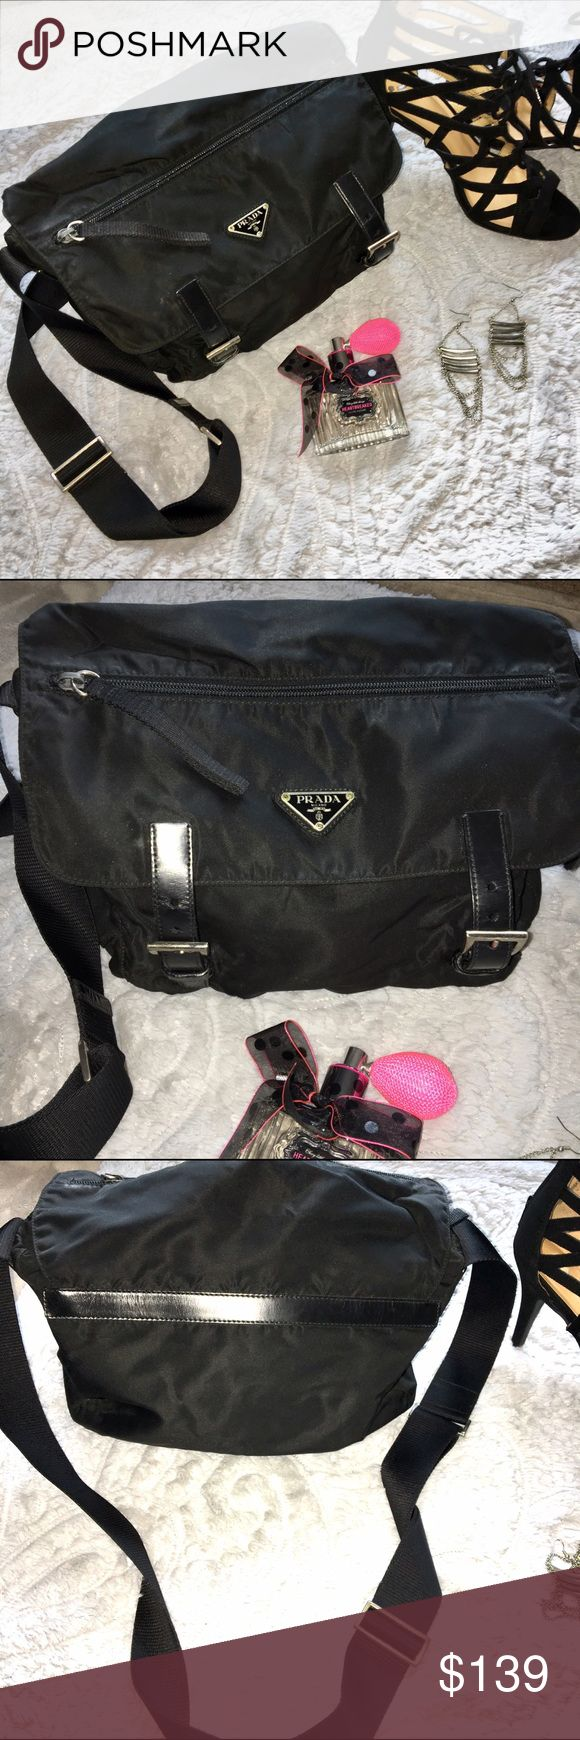 Vintage Authentic Prada Bag!  Prada Vela cross-body messenger. It has some signs of wear. The lining in the flap pocket is ripped but the inside of the bag is in good condition. Authentic Prada! Awesome bag! Prada Bags Crossbody Bags